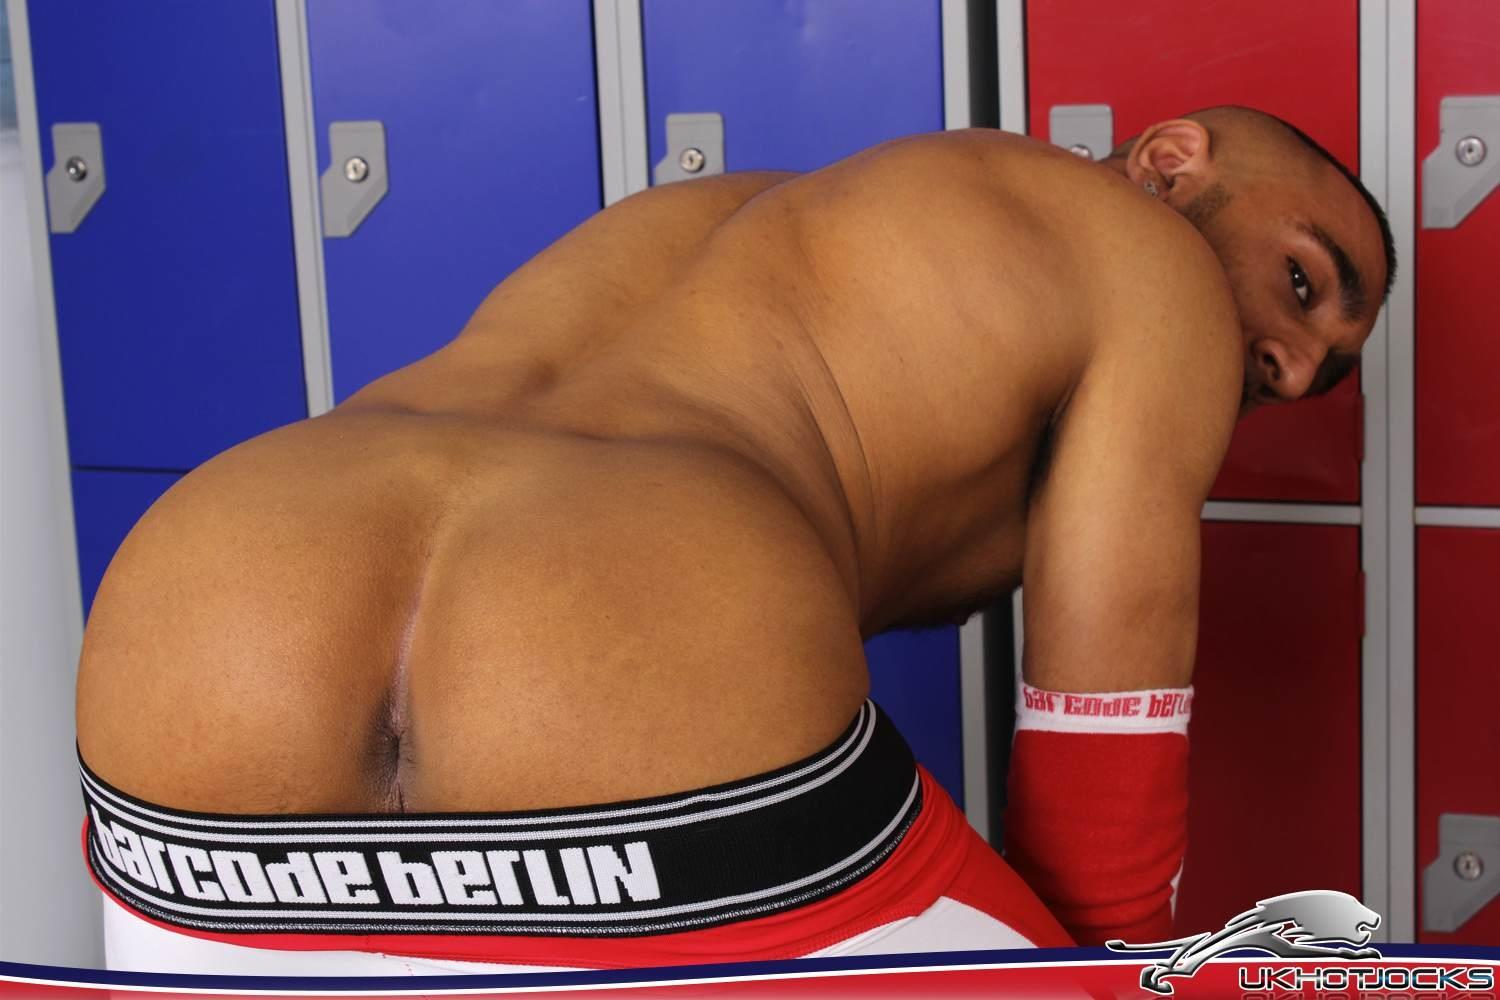 UK-Hot-Jocks-Adam-Nivad-Pakistani-Arab-With-A-Big-Uncut-Cock-Jerk-Off-Amateur-Gay-Porn-12 Pakistani Arab Muscle Jock Stroking His Big Thick Cock